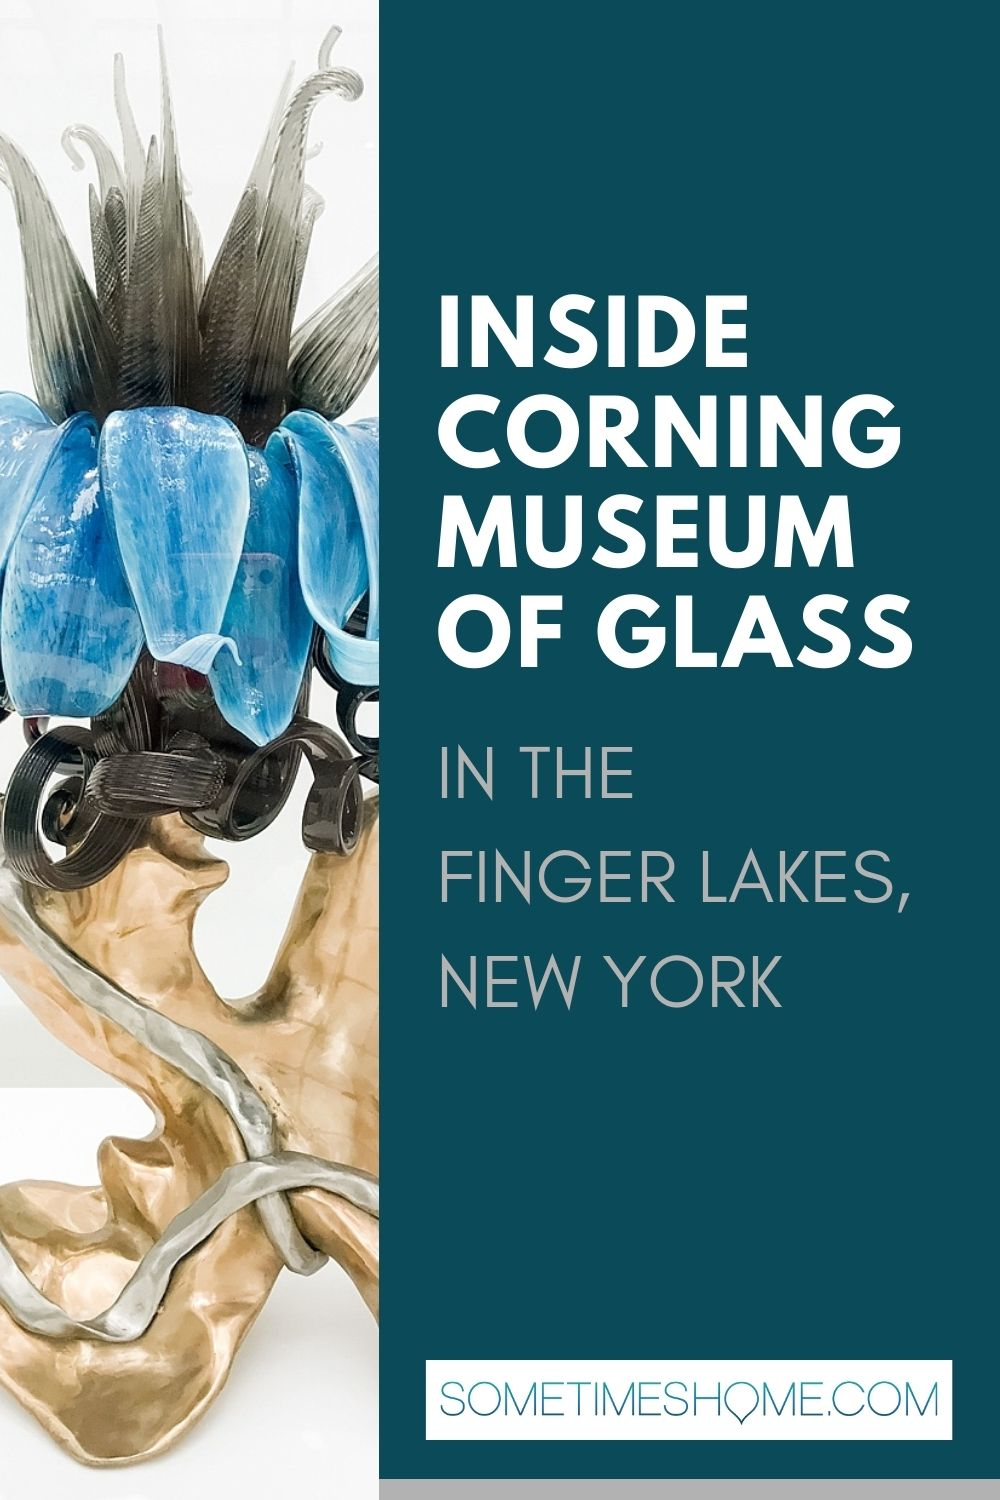 Inside Corning Museum of Glass in the Finger Lakes, NY Pinterest image with a photo of a glass sculpture in black, blue and gold on the left.